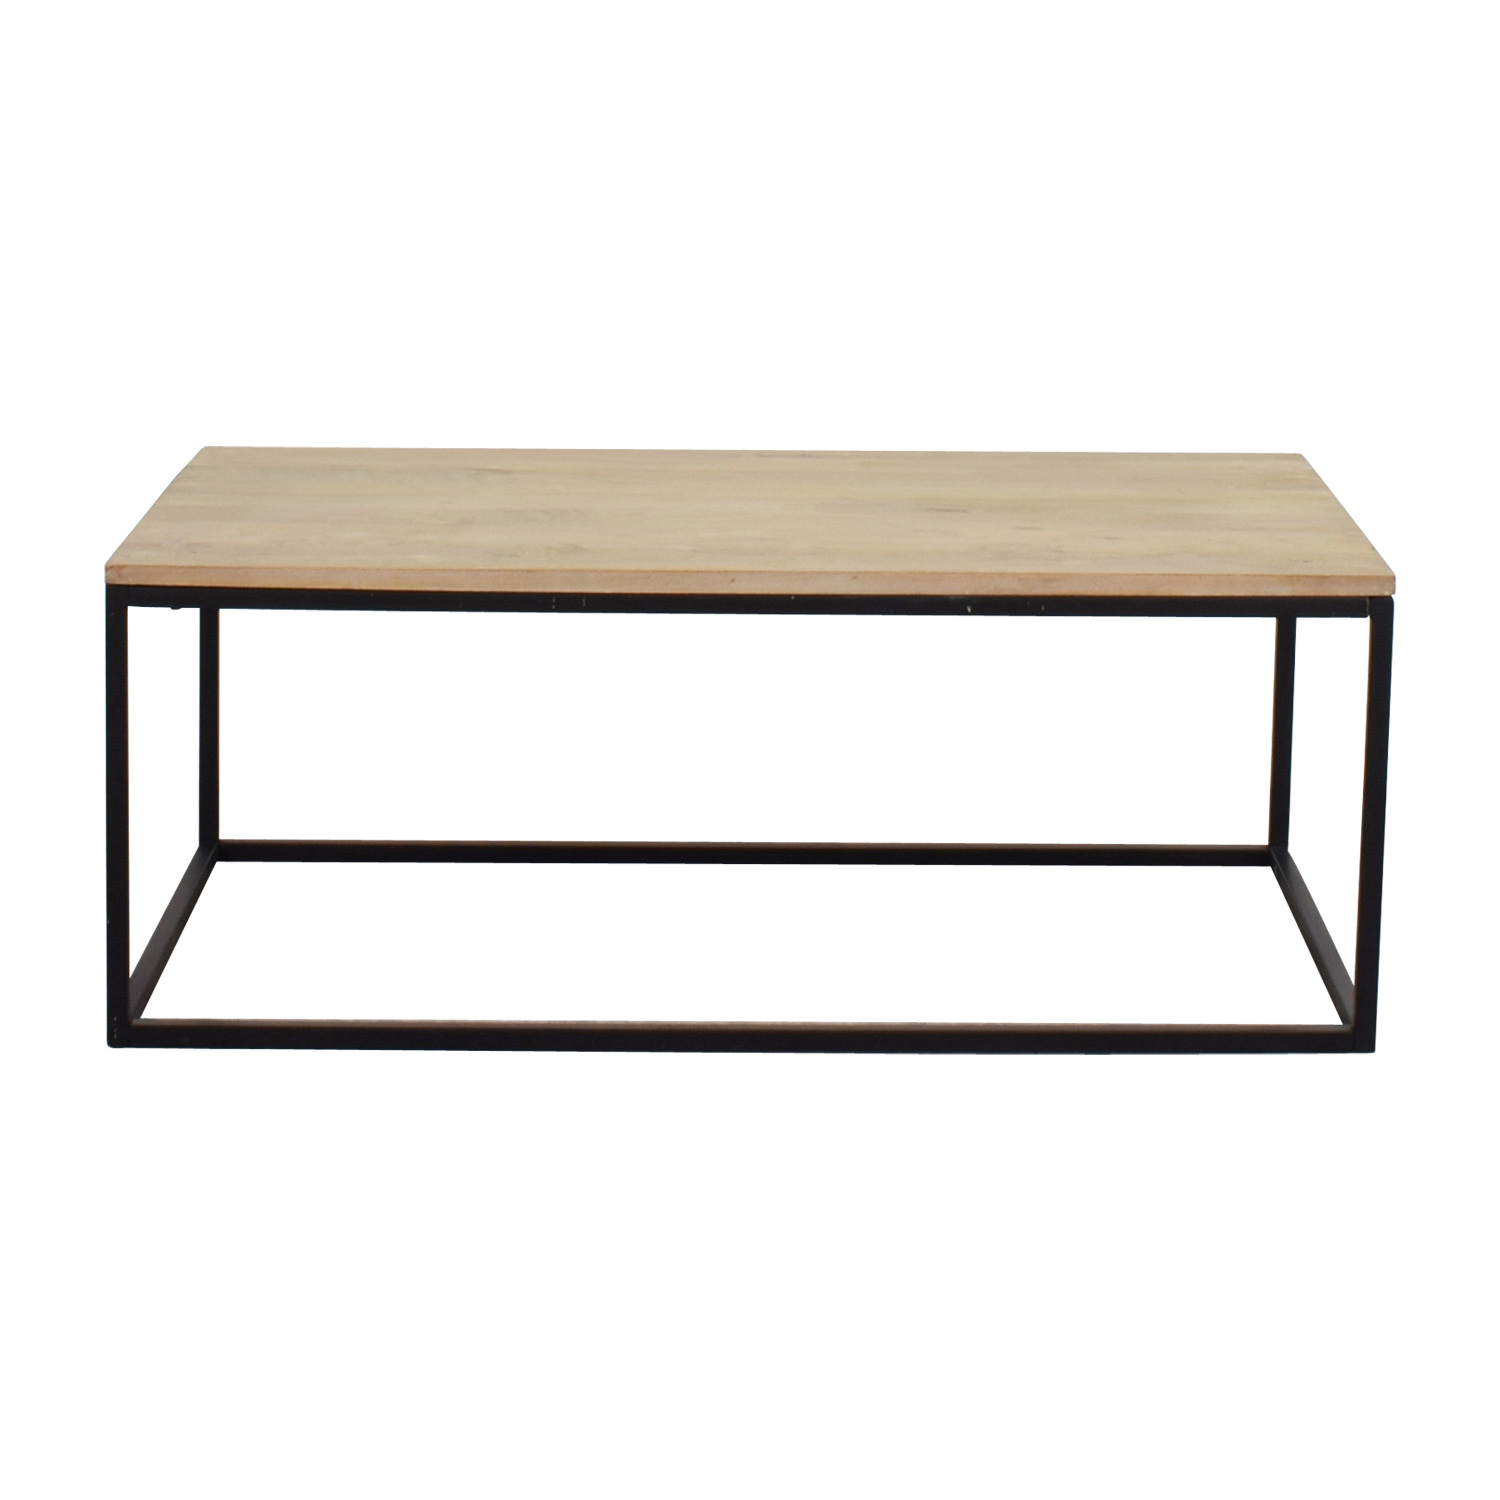 Crate & Barrel Natural Wood Coffee Table / Coffee Tables